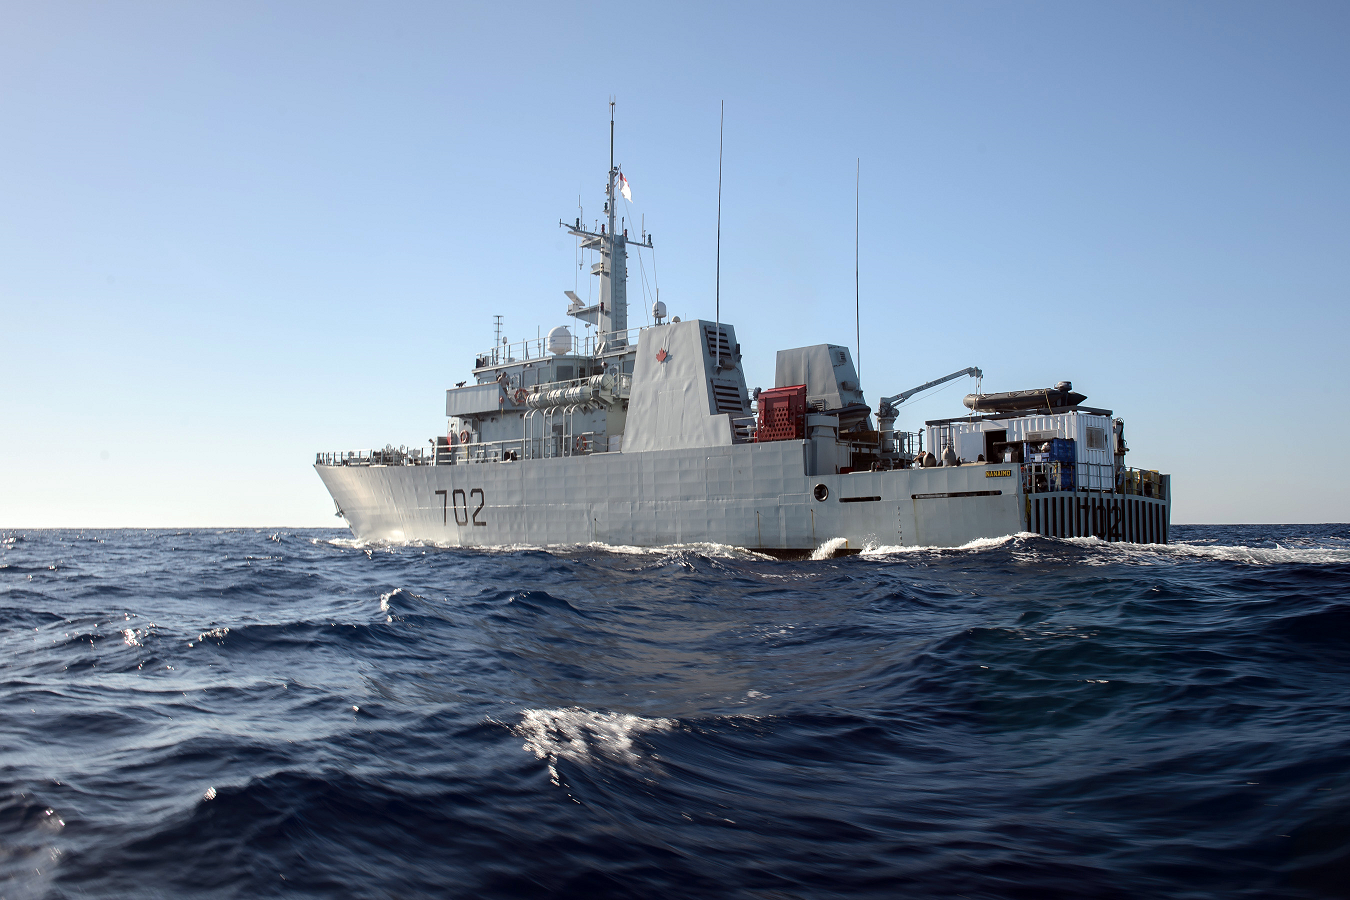 October 19, 2017. Her Majesty's Canadian Ship NANAIMO patrols the Caribbean Sea during Operation CARIBBE on October 19, 2017. Photo: MARPAC Imaging Services.